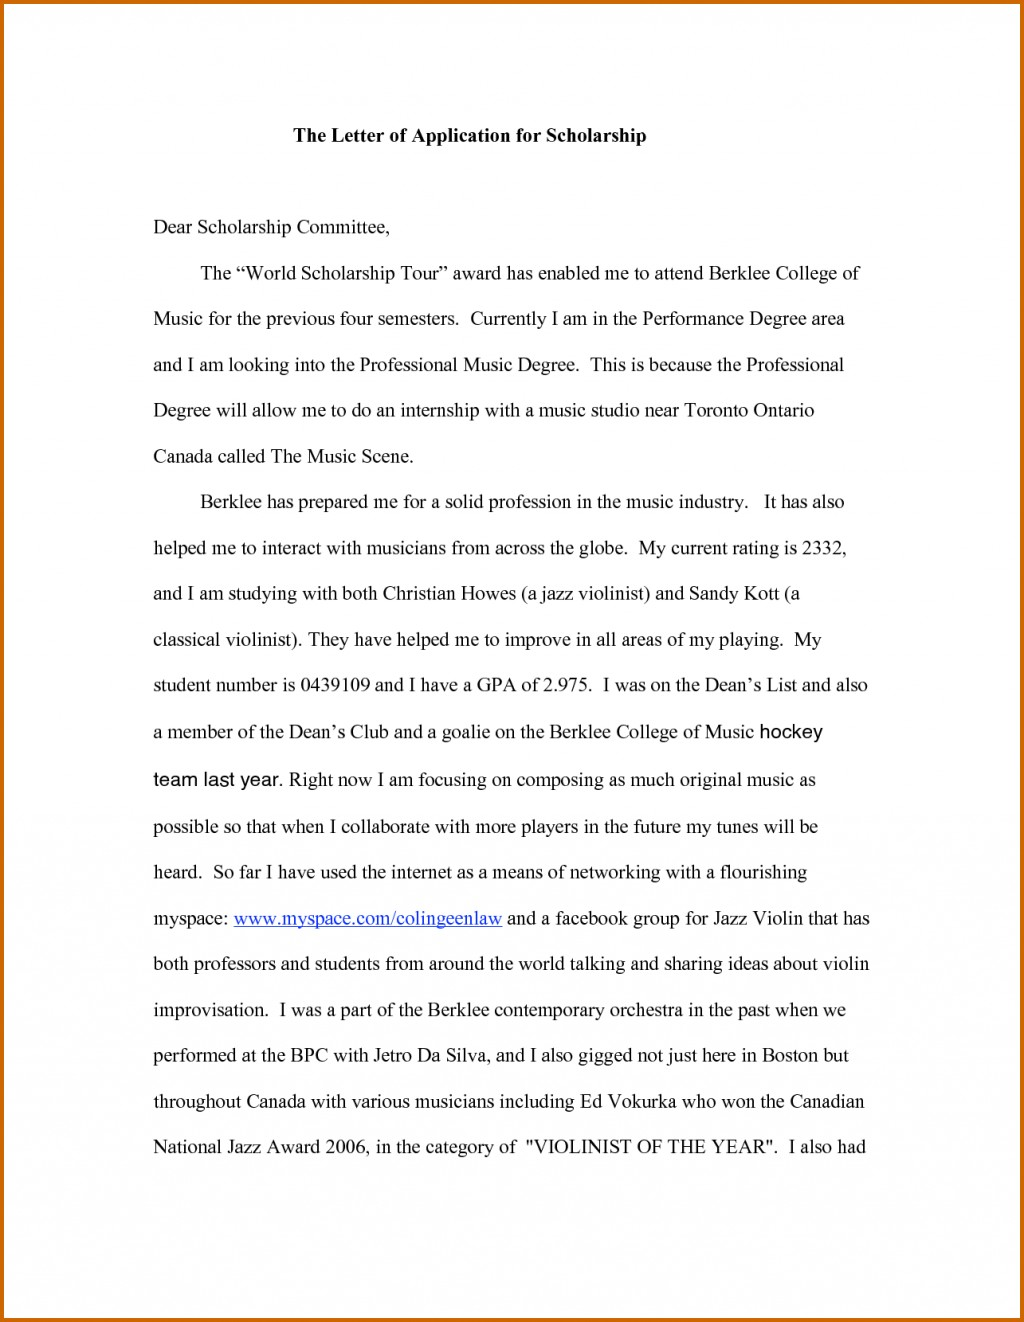 007 How To Start Scholarship Essay Write Me On Brexits Who Am I Introduction Striking A About Yourself Examples Off Large